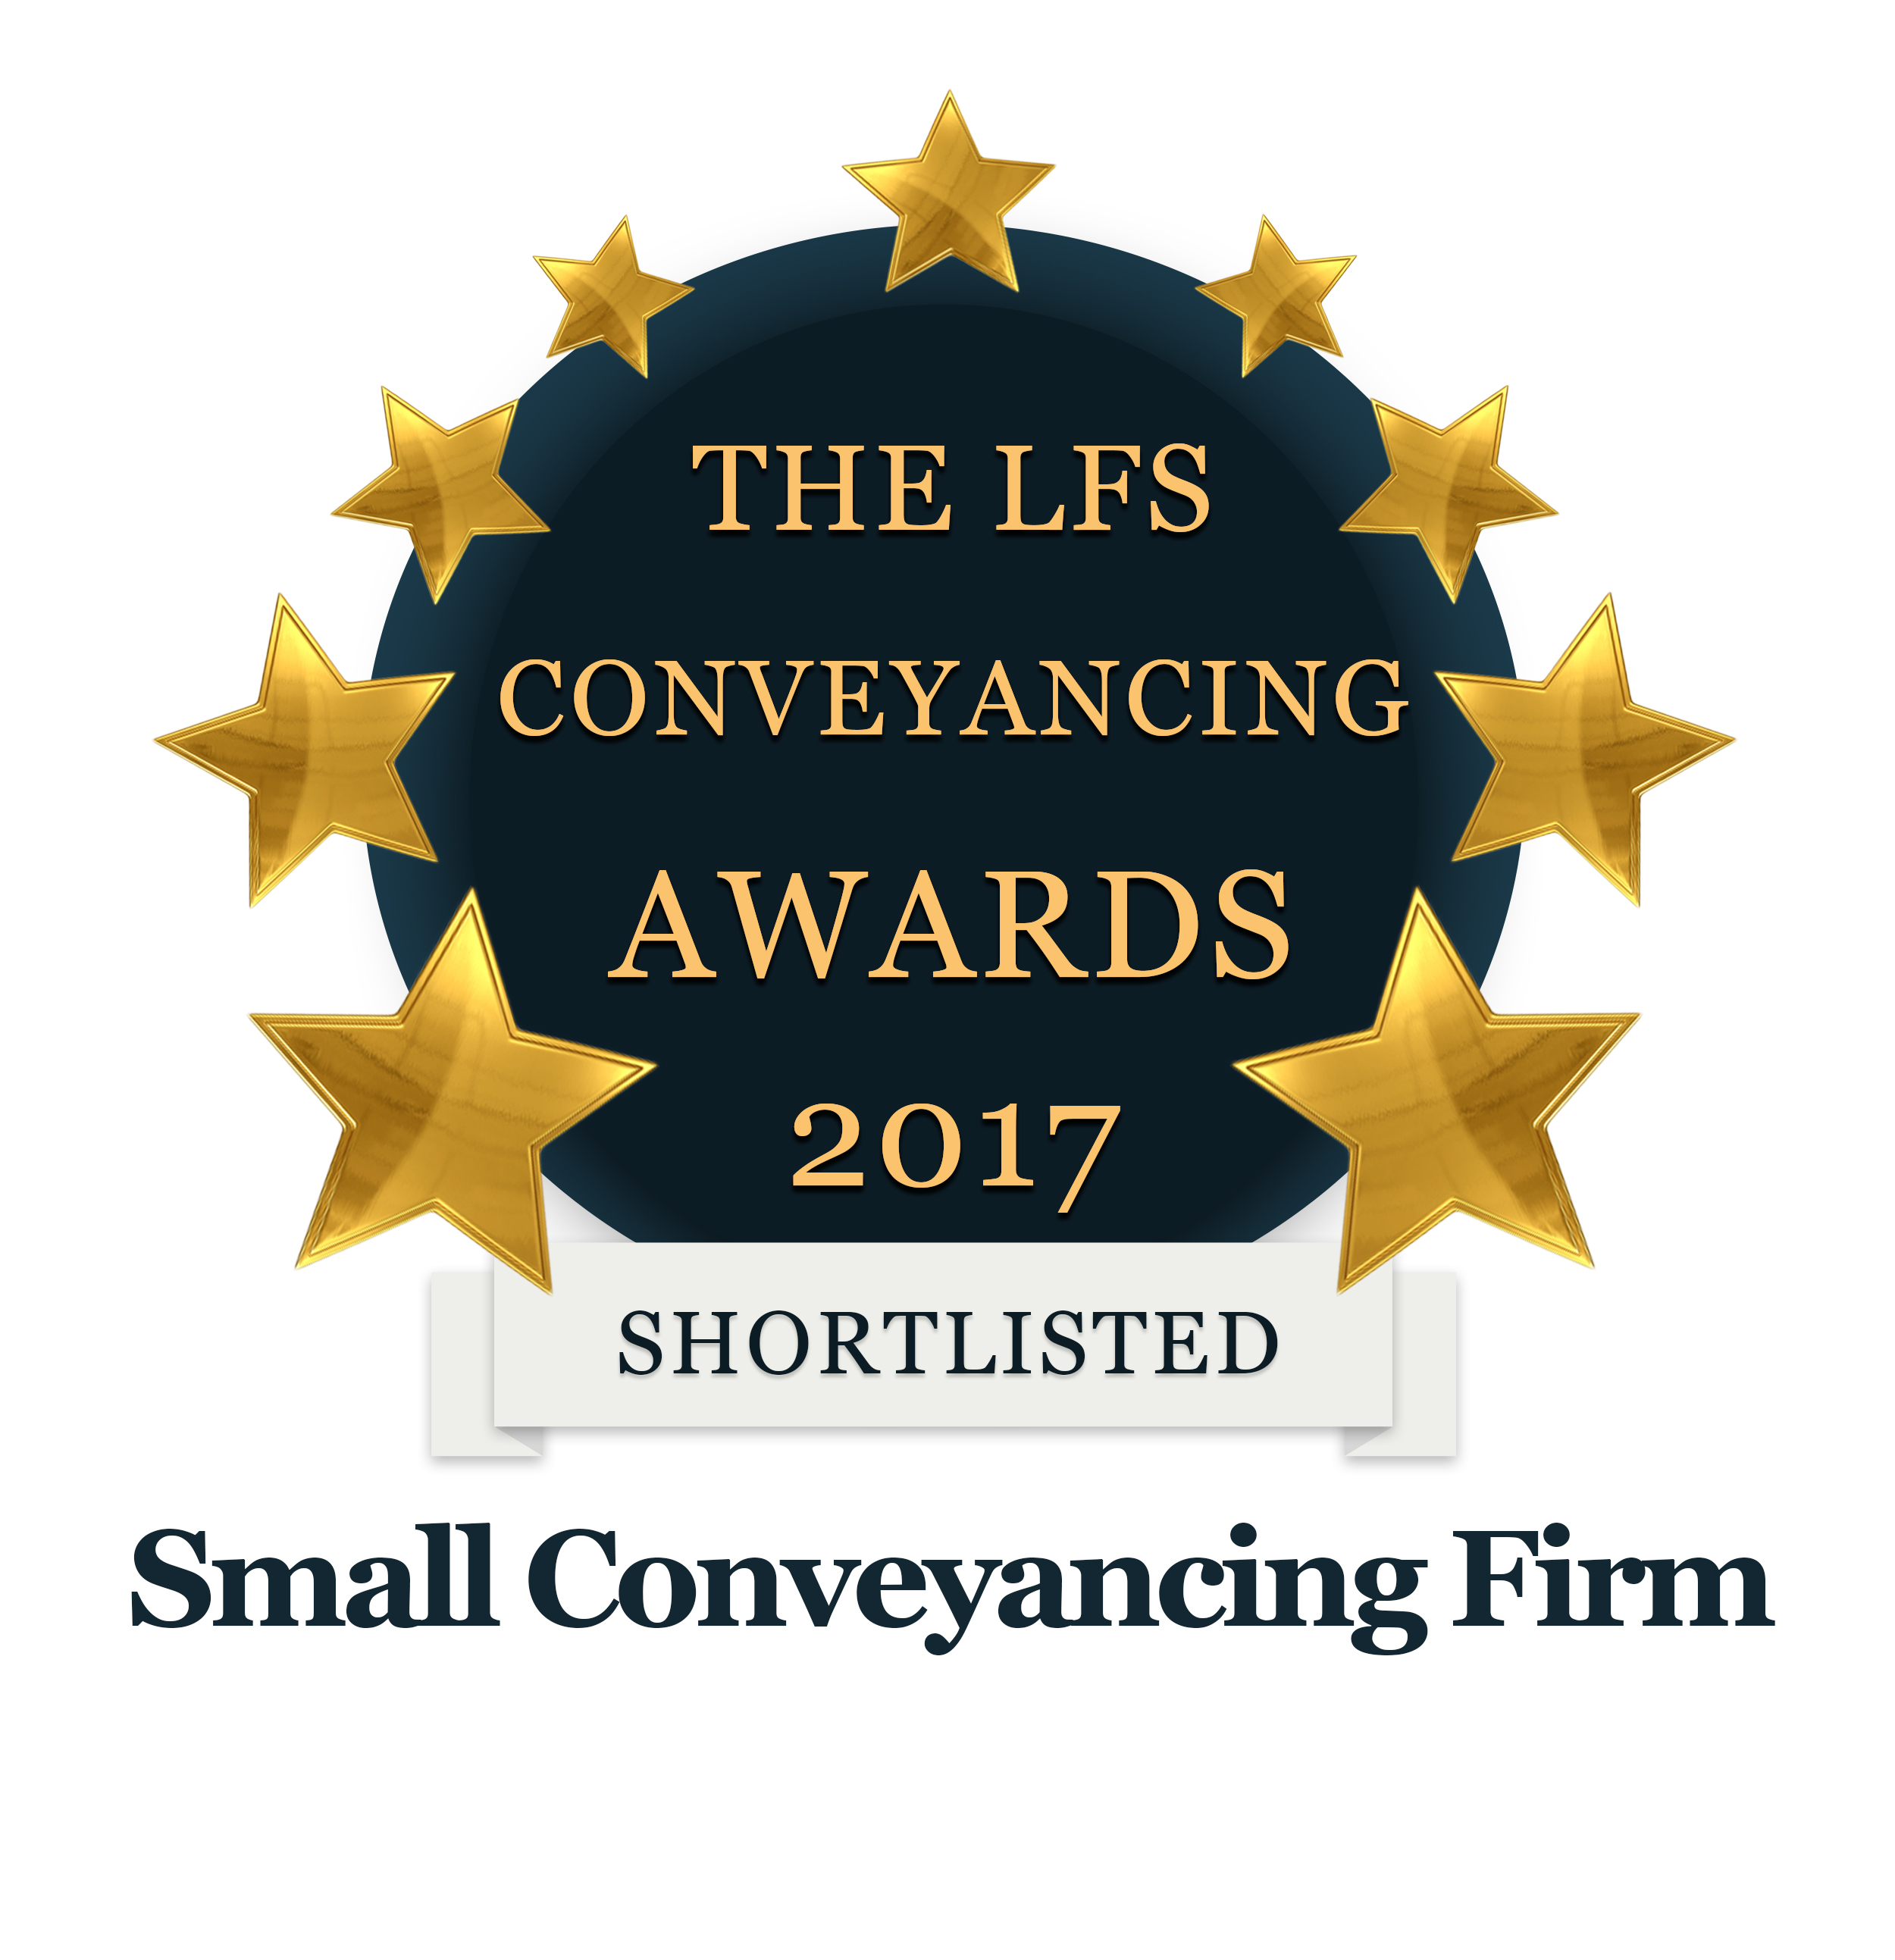 LFS Conveyancing Award Small Firm 2017